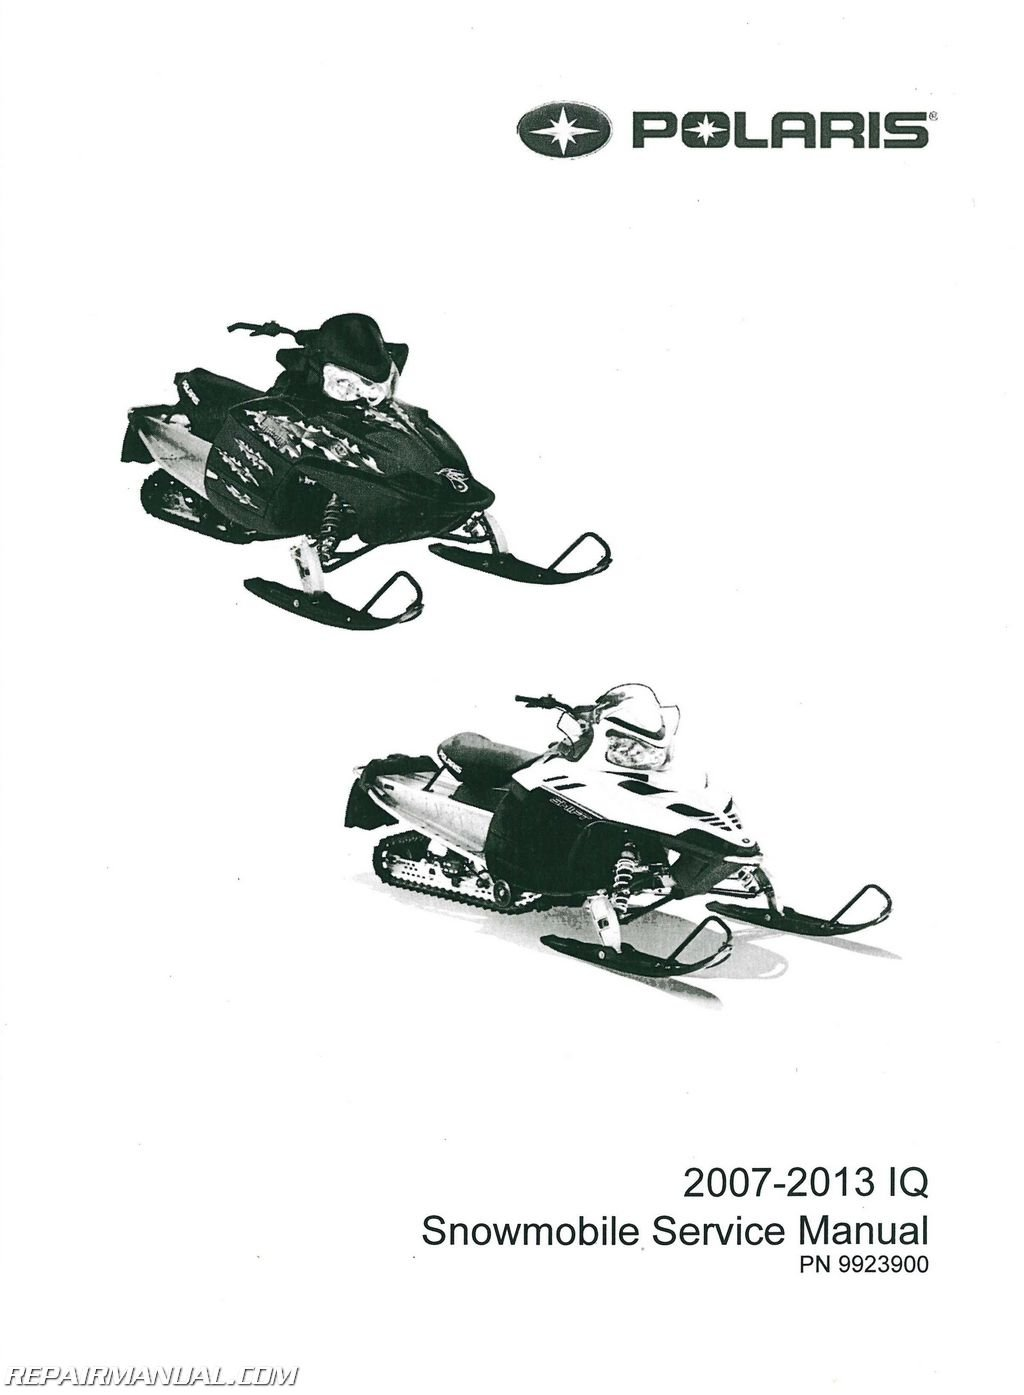 9923900 2007-2013 Polaris IQ Snowmobile Service Manual: Manufacturer:  Amazon.com: Books